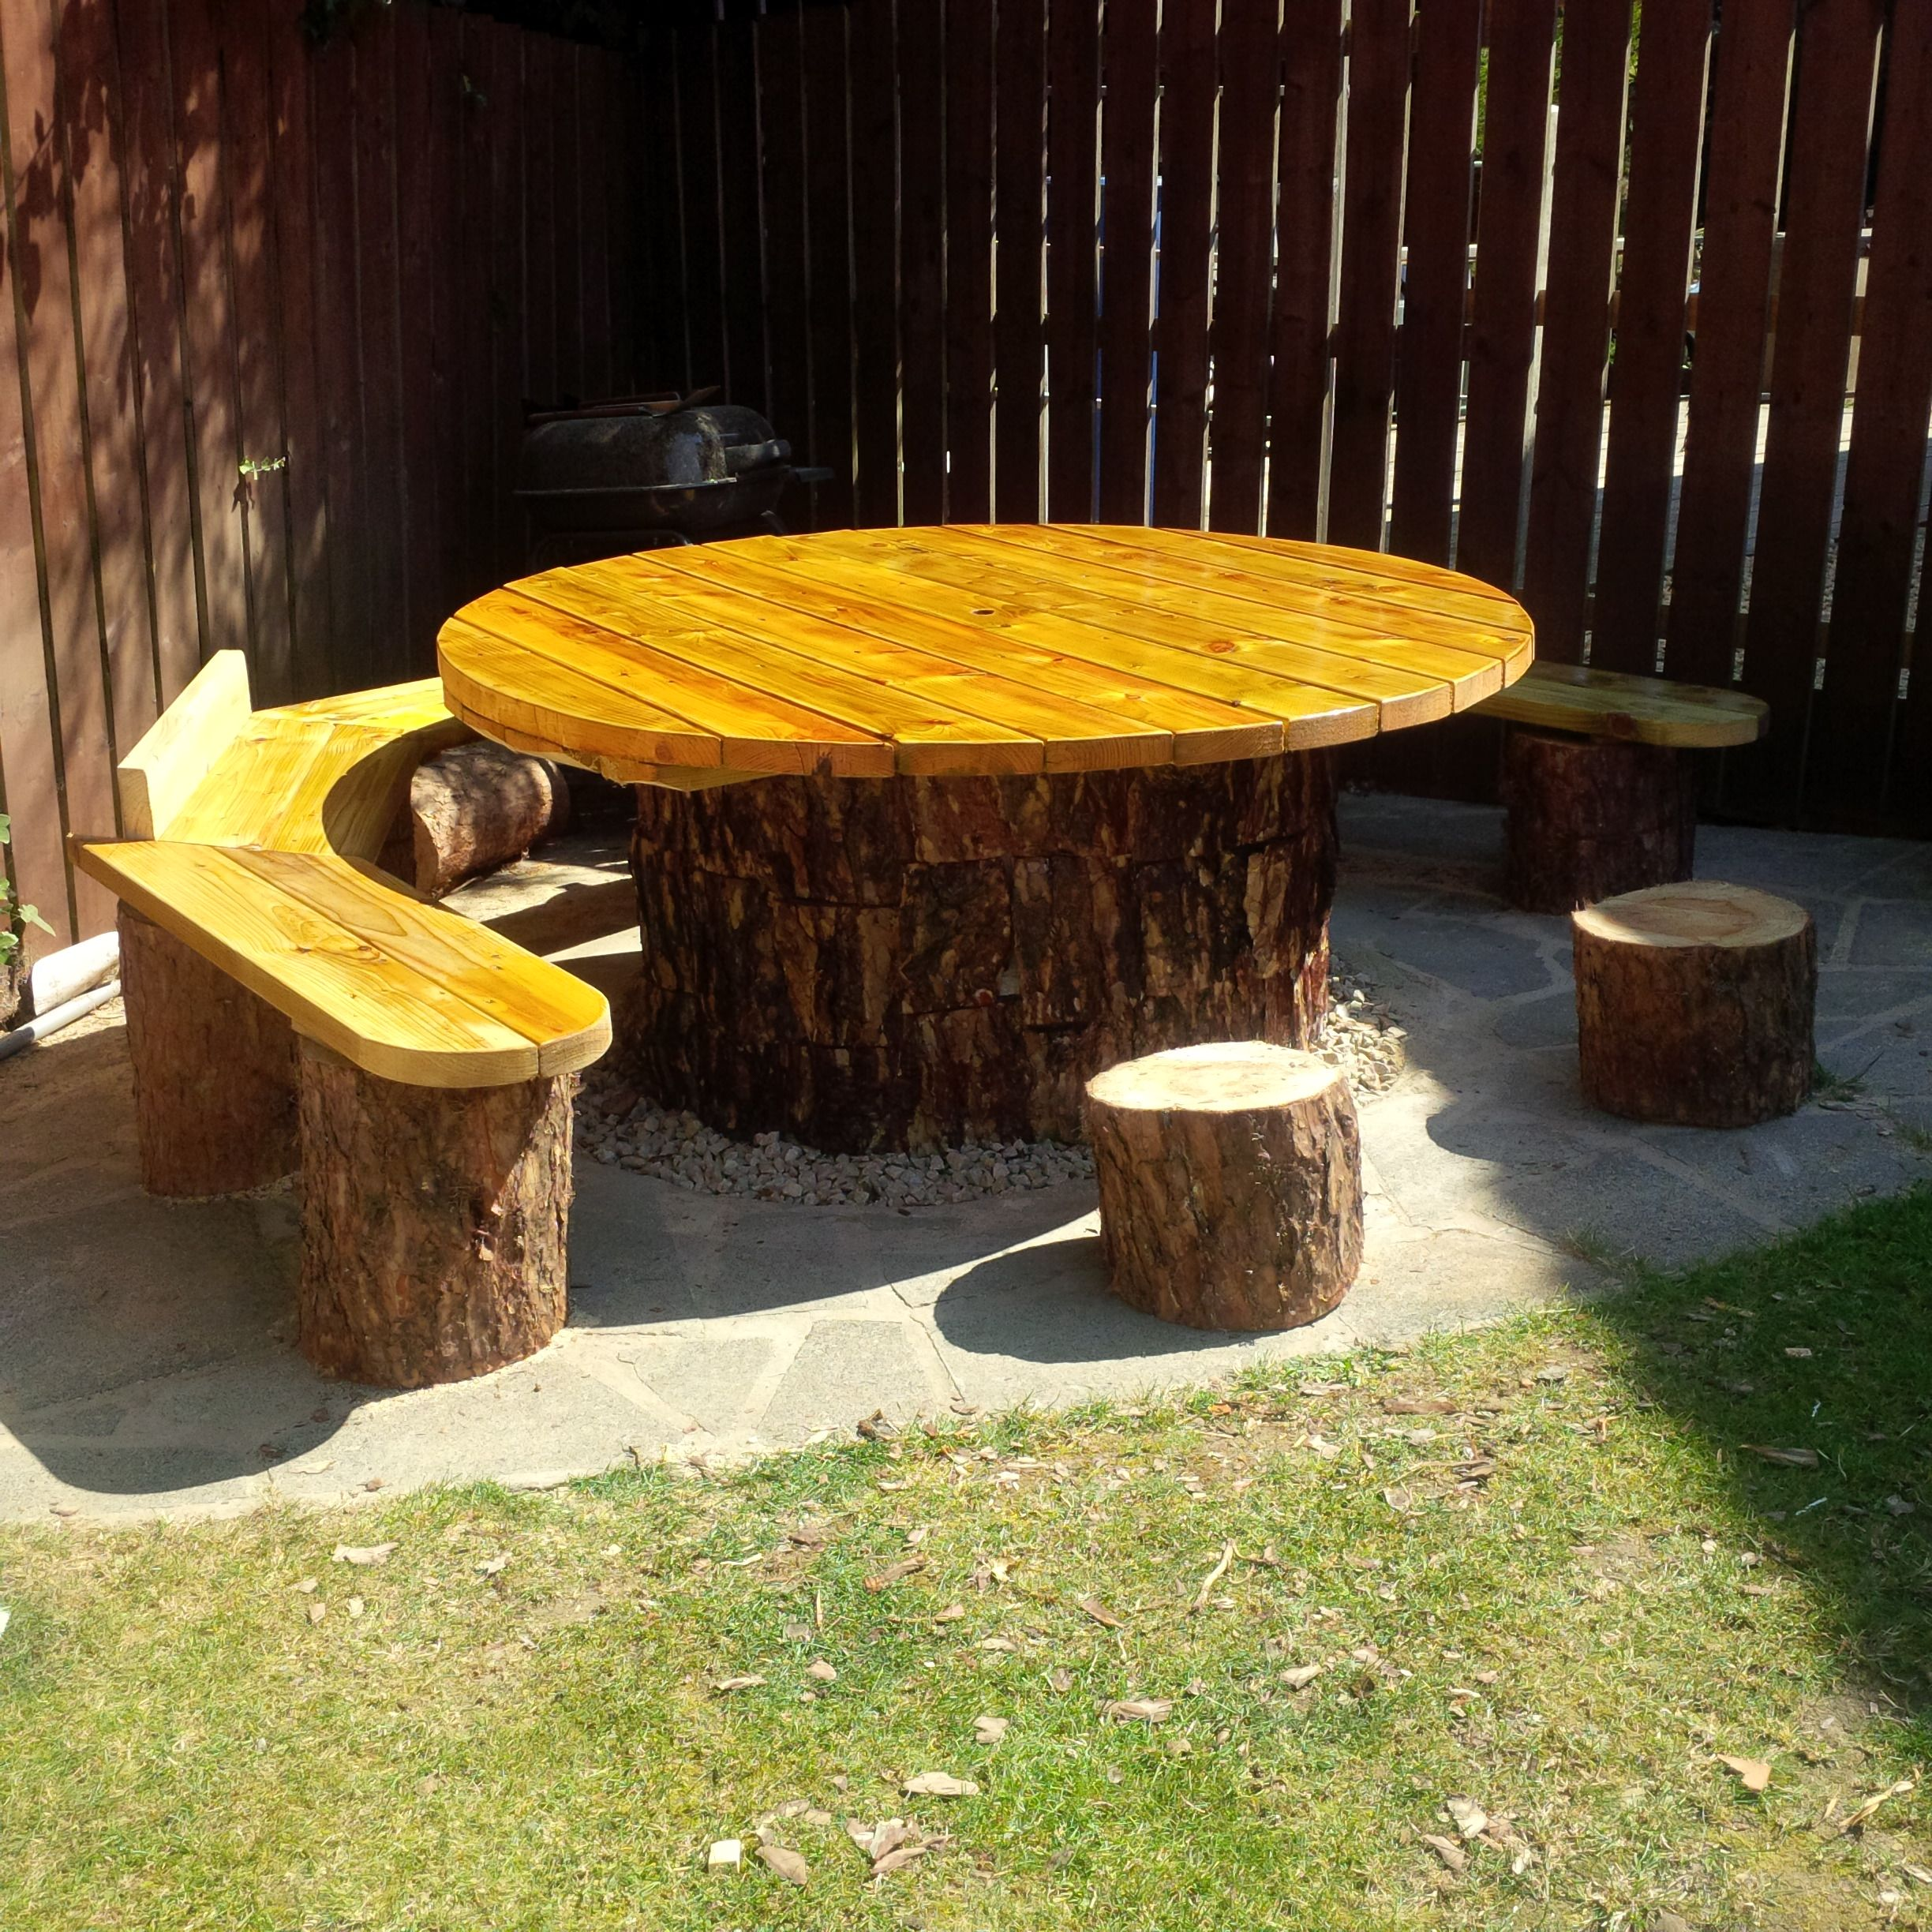 Diy Log Table Table Made With Concrete Cylinder And Tree